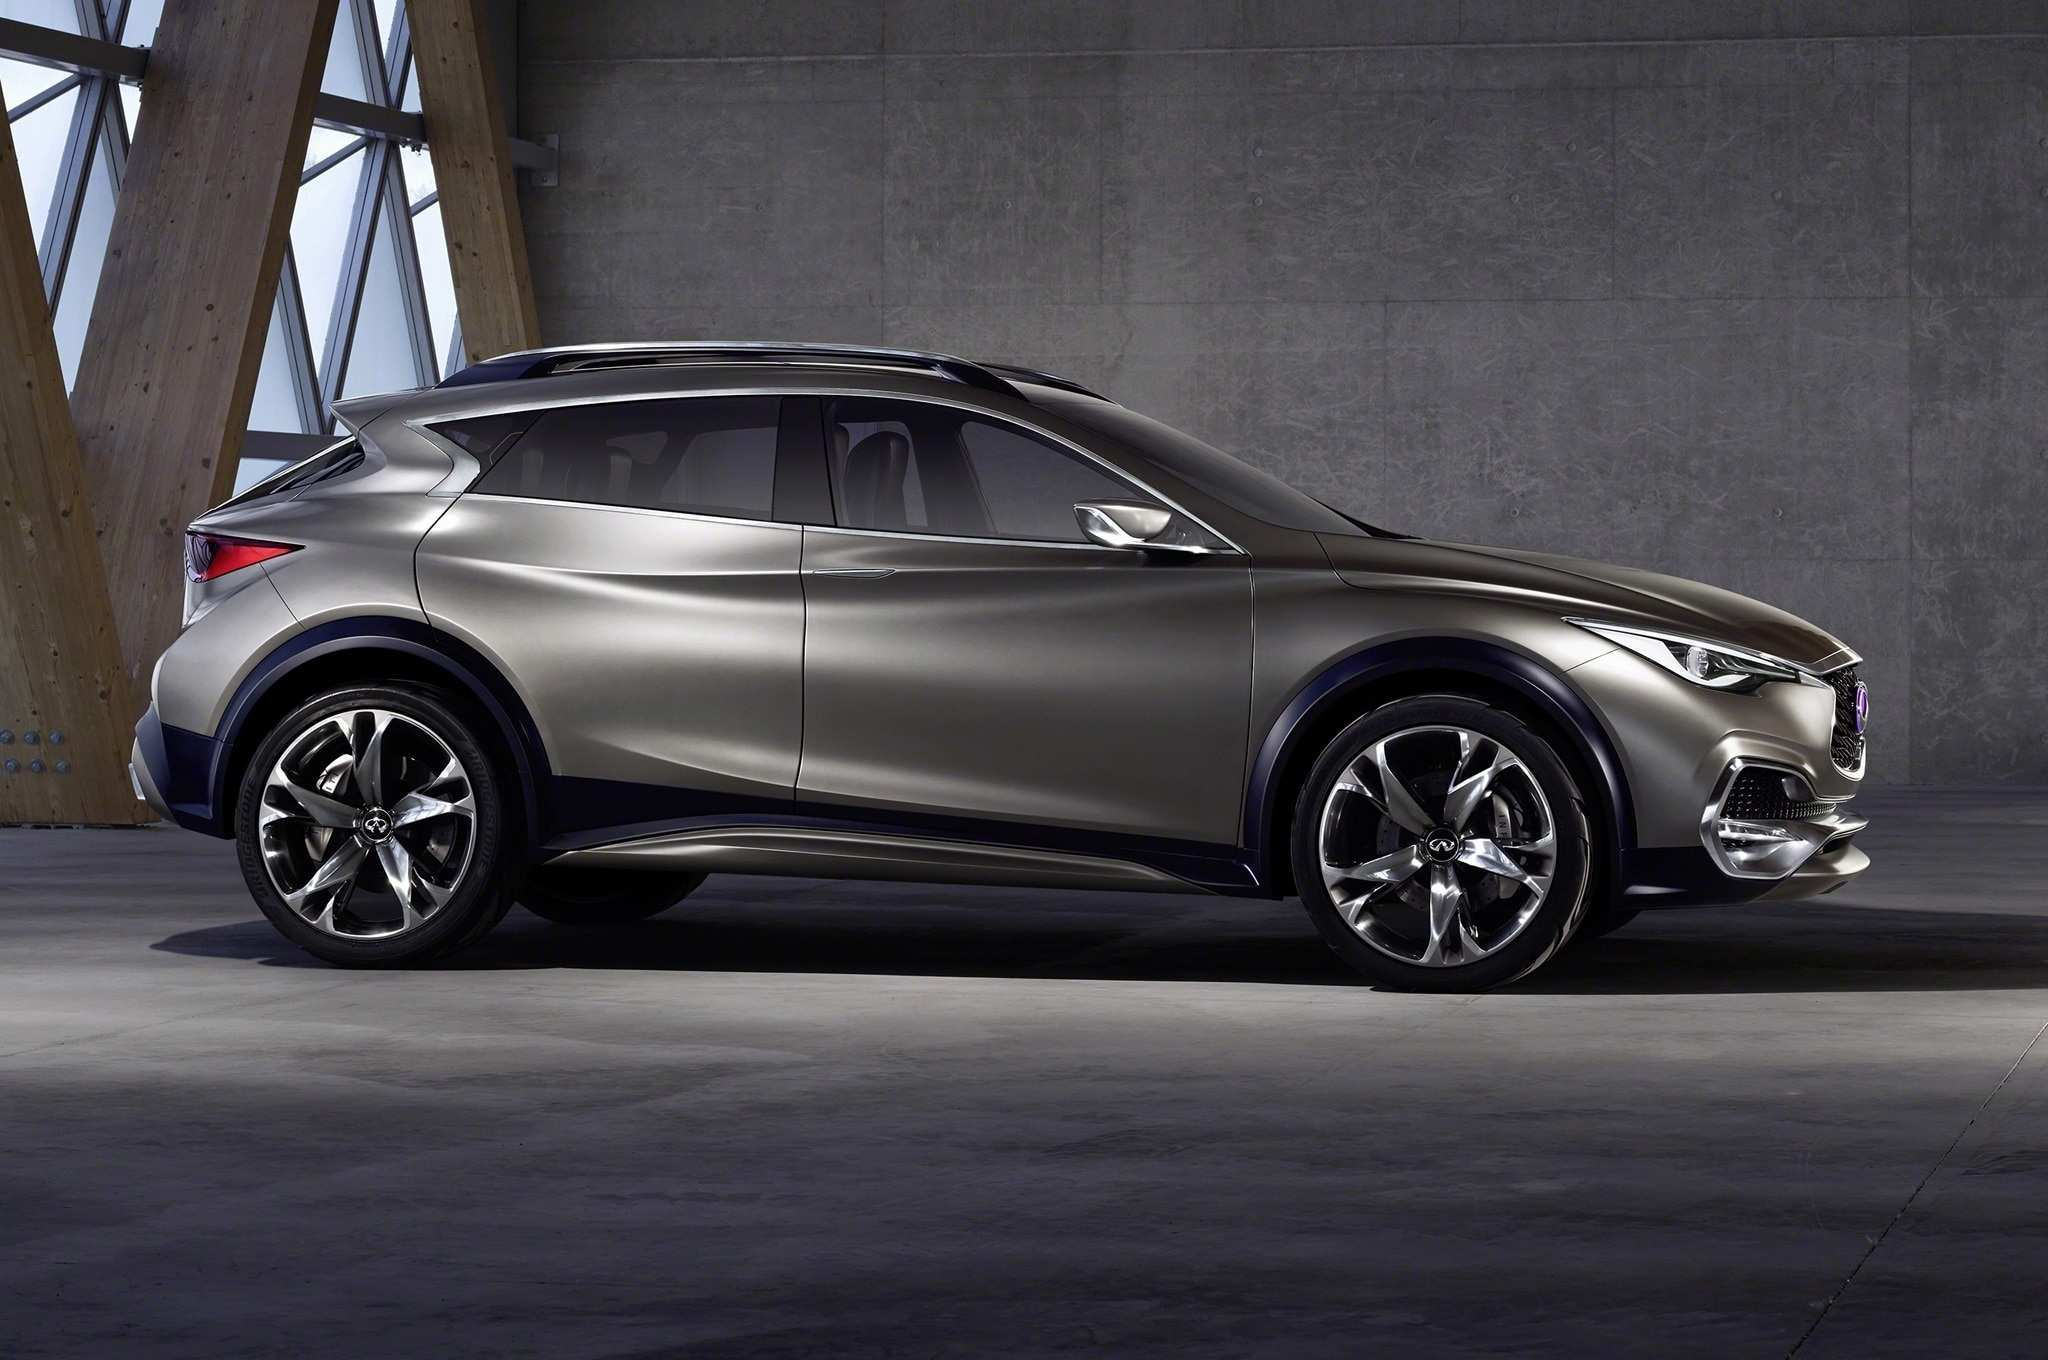 71 The Best 2020 Infiniti Qx70 Redesign Images